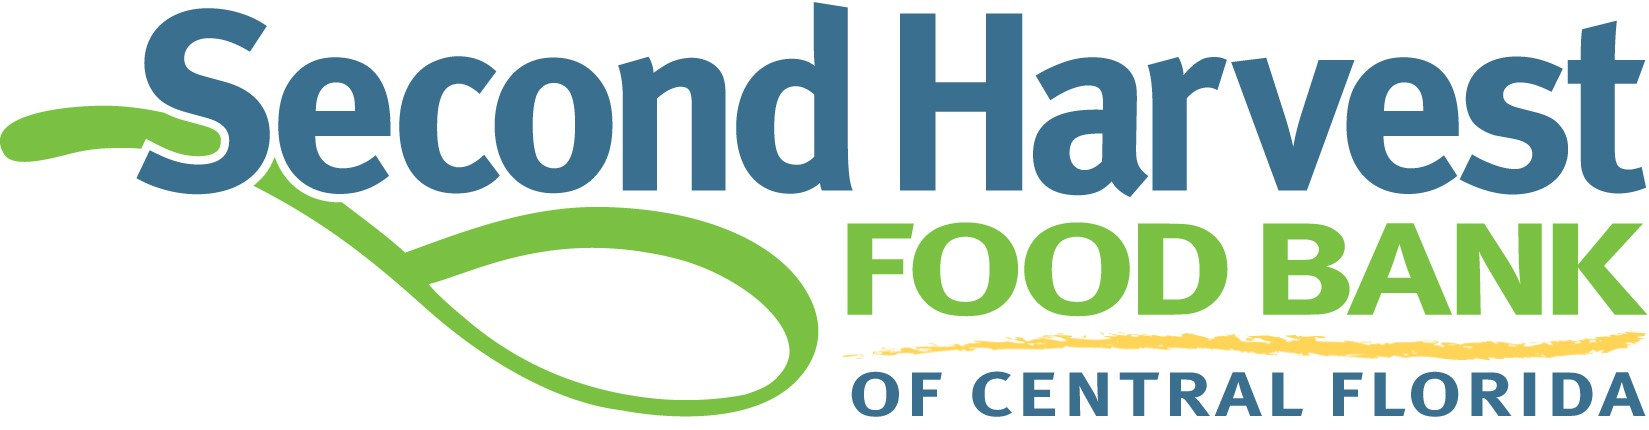 Best Local Charitable Group Second Harvest Food Bank Local Color